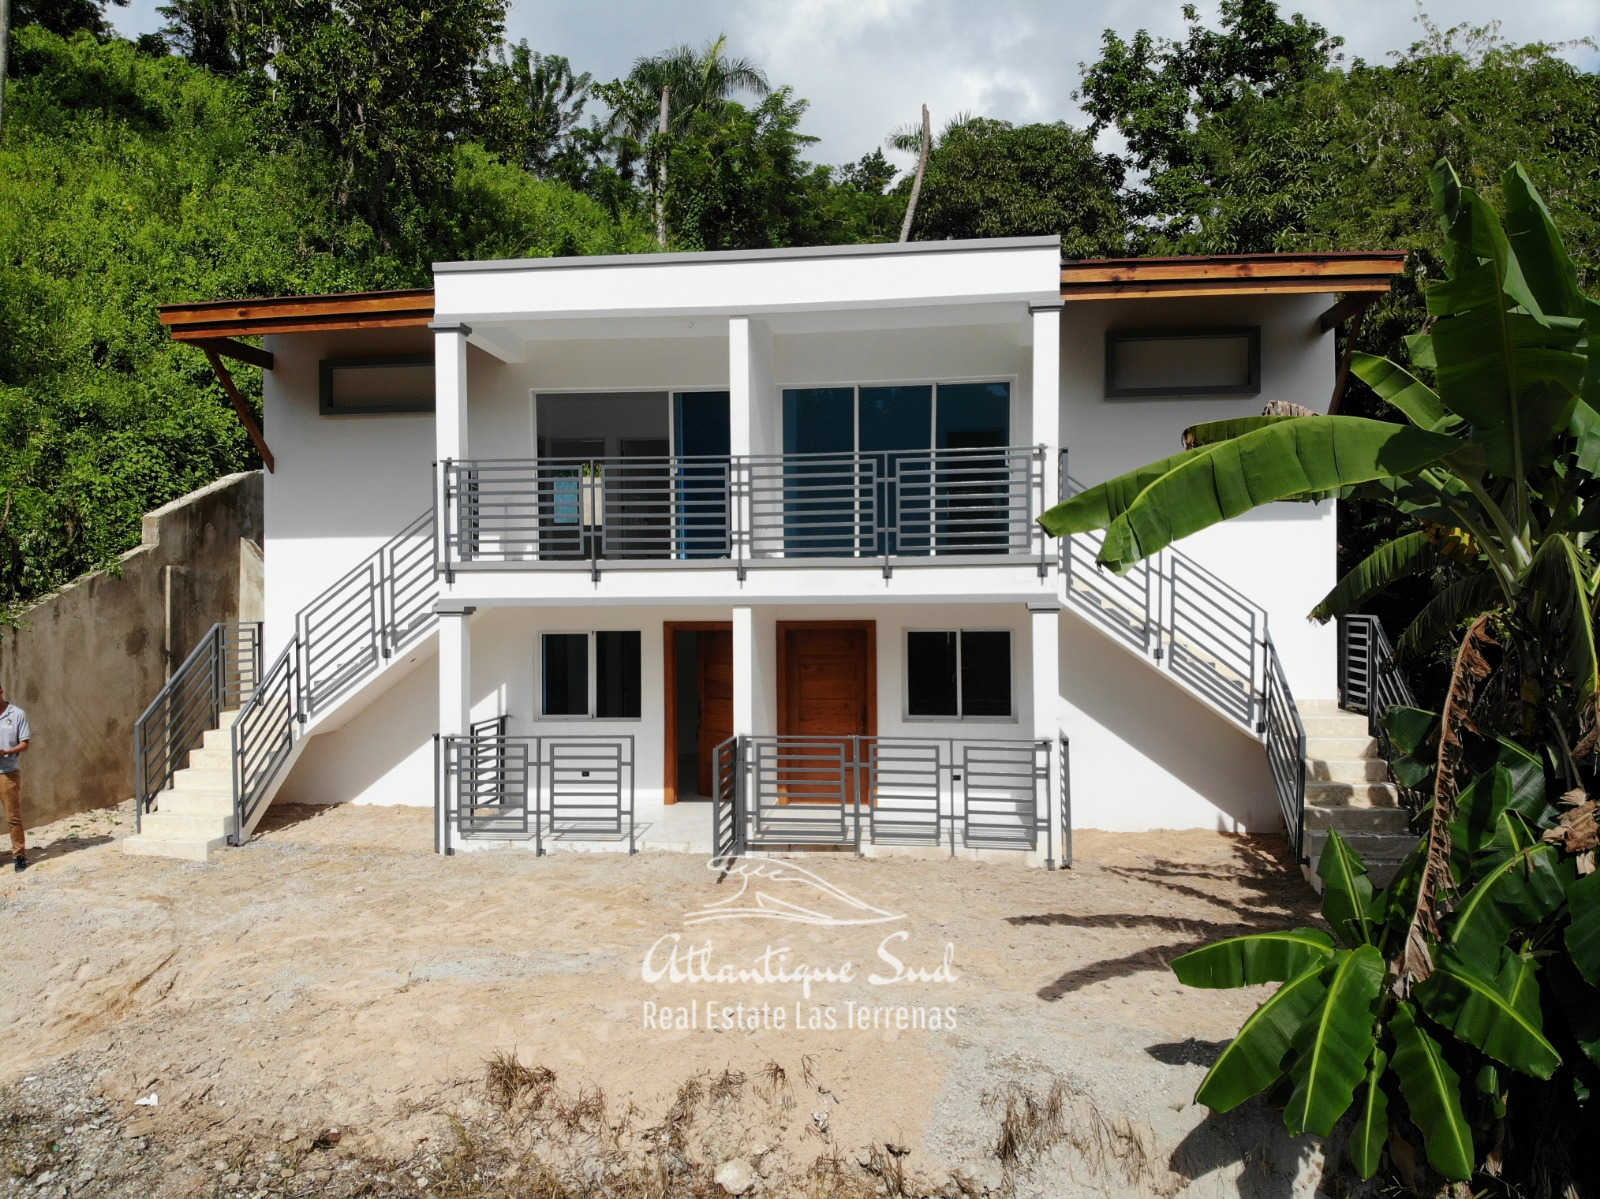 Small condominium for sale Las Terrenas 7.jpg